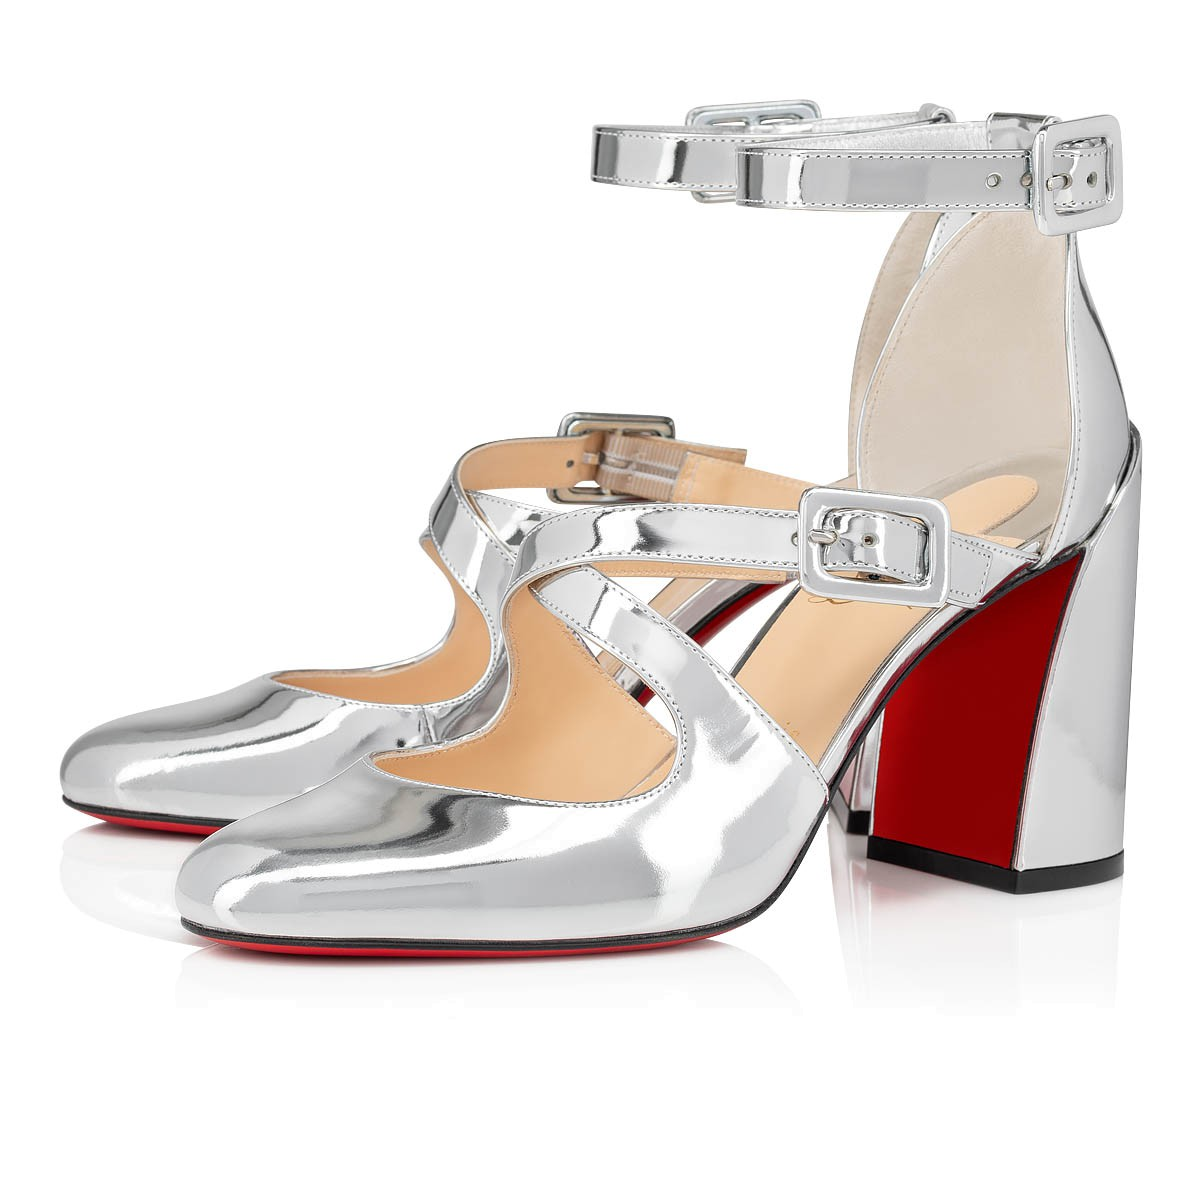 Souliers - Ronnic - Christian Louboutin